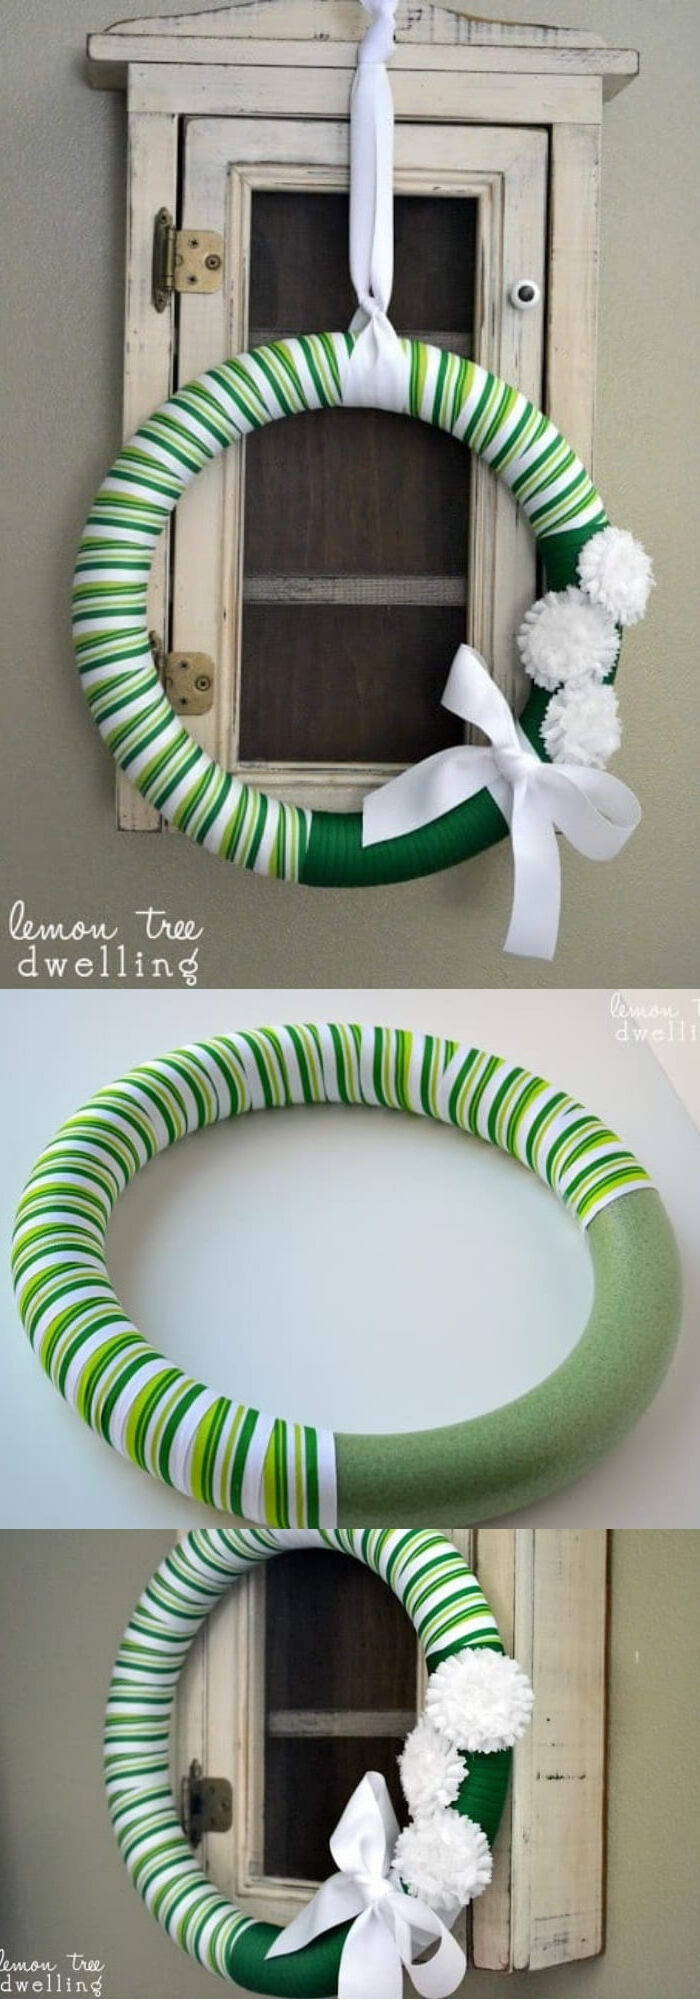 photo collage of step by step diy tutorial, wreath covered with green and white ribbon, st patricks decor